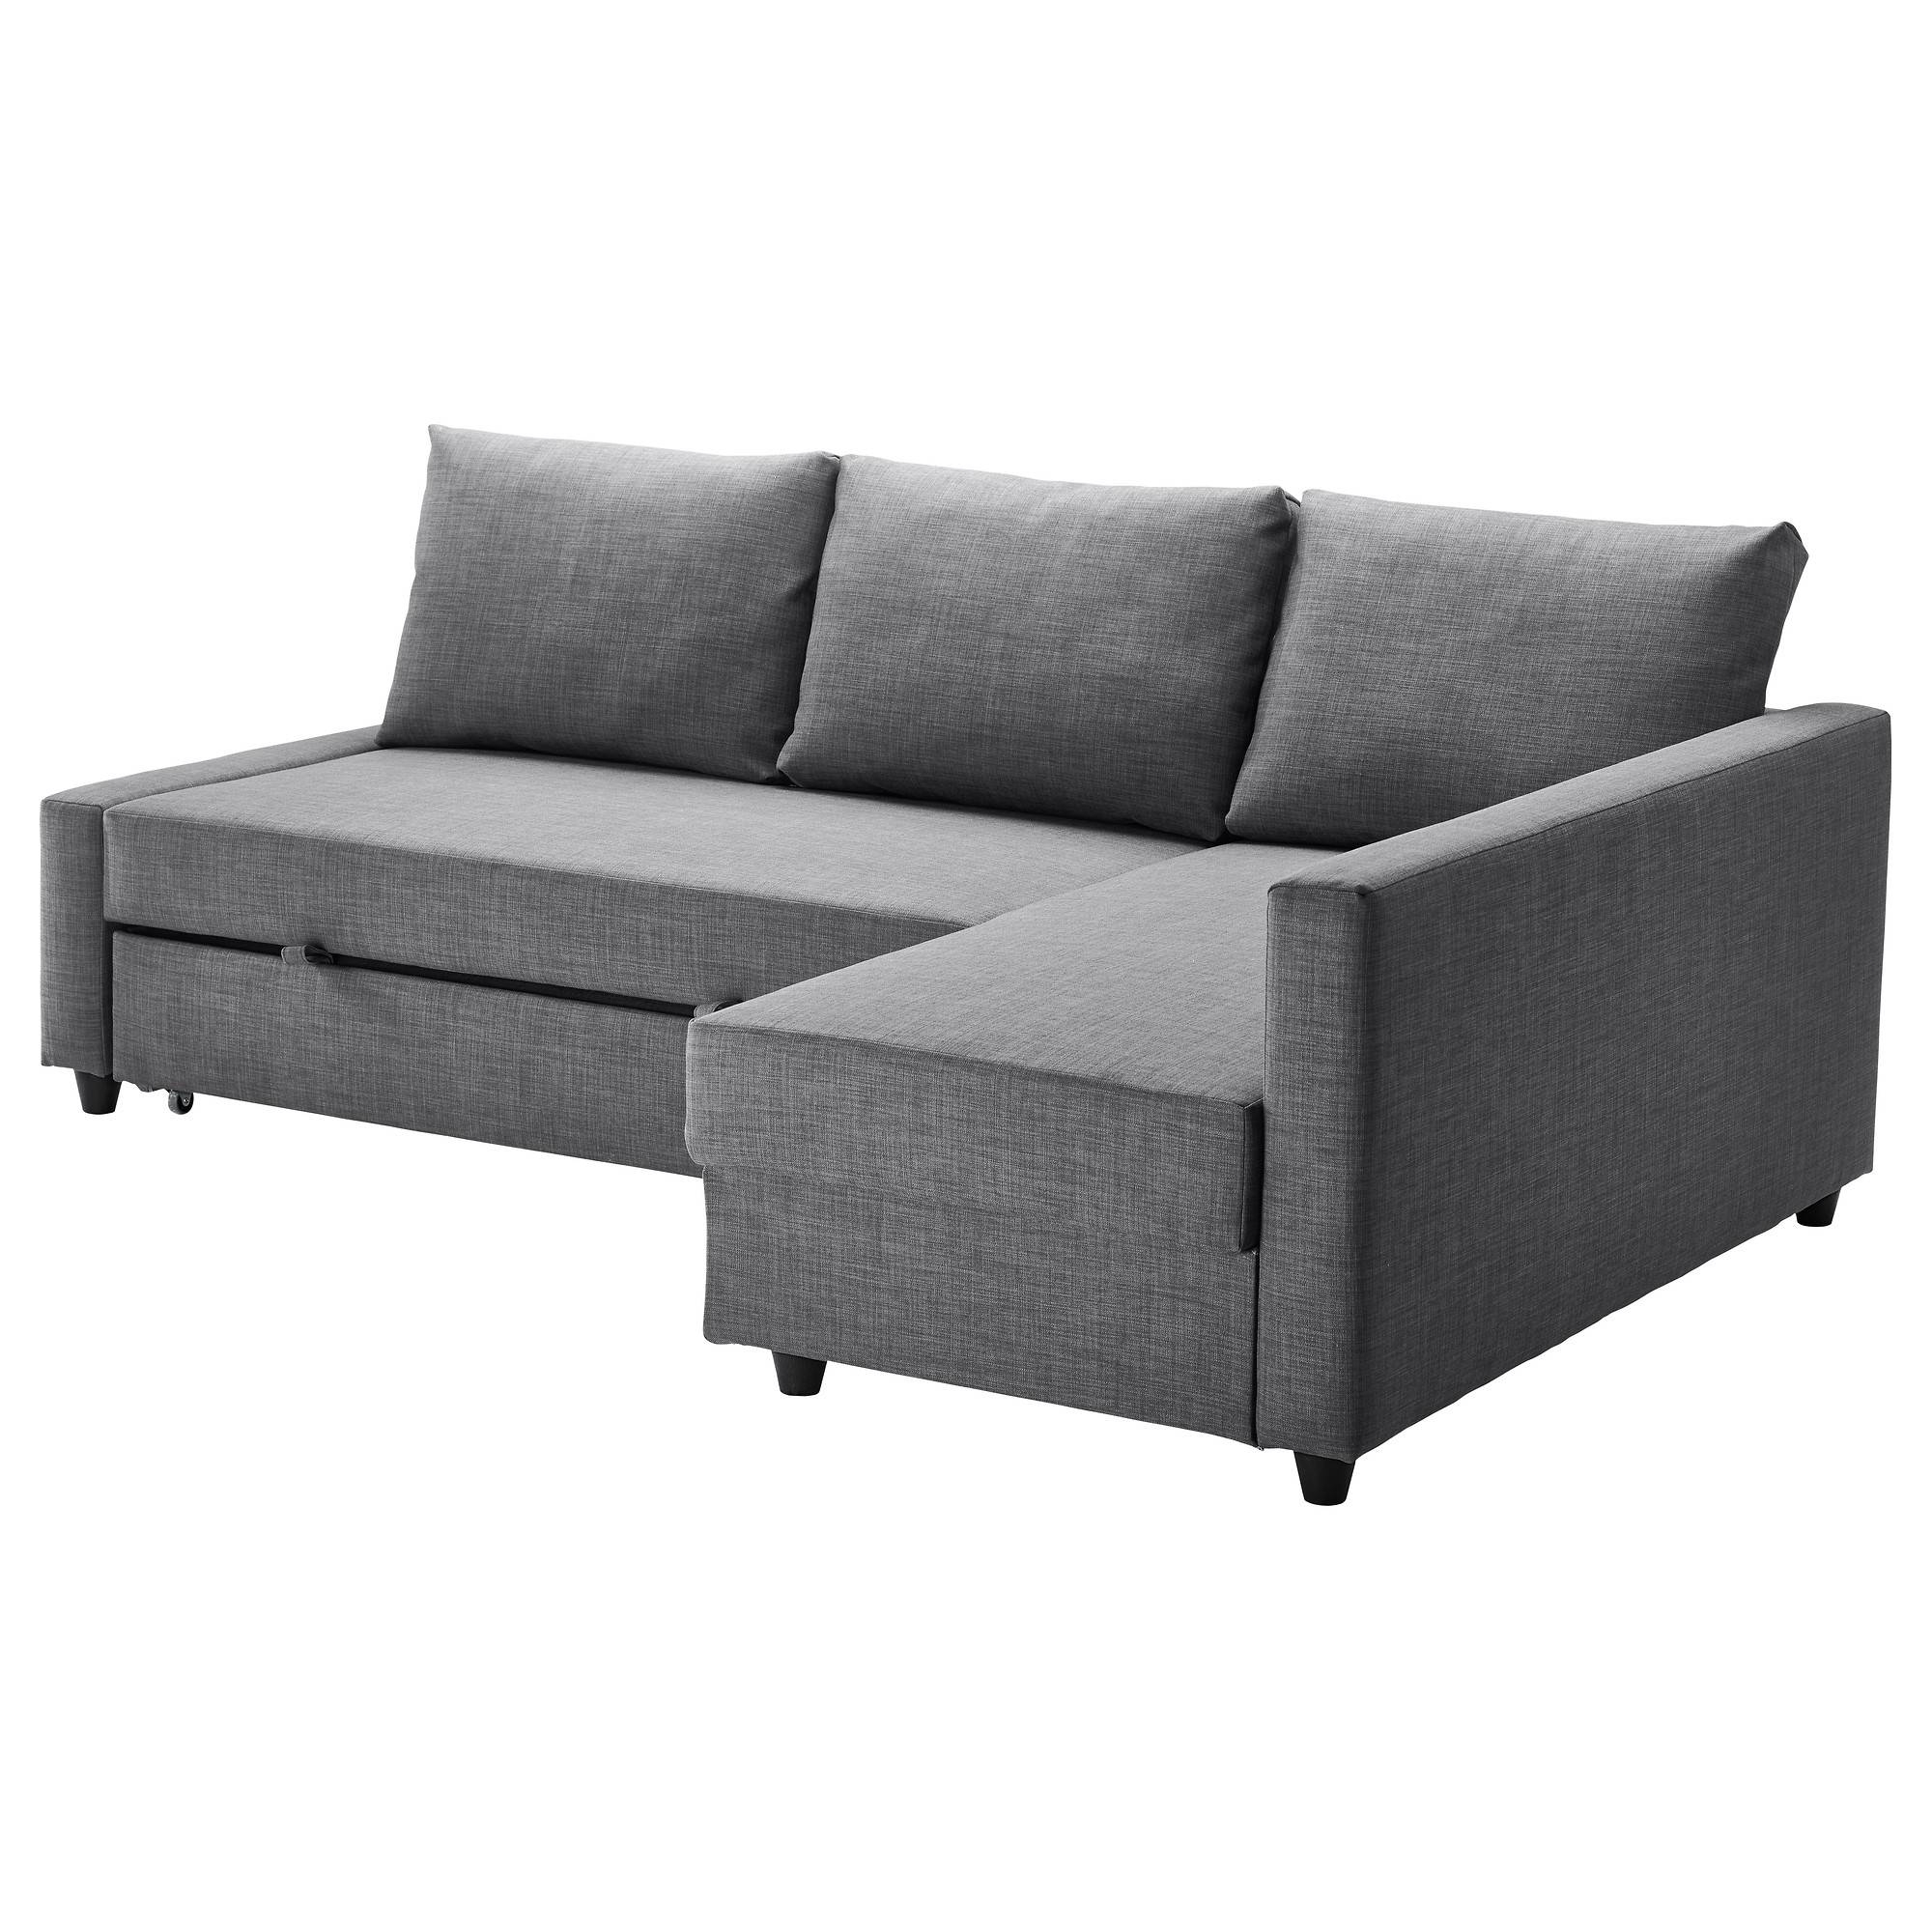 Friheten Sleeper Sectional,3 Seat W/storage - Skiftebo Dark Gray with Ikea Single Sofa Beds (Image 7 of 30)